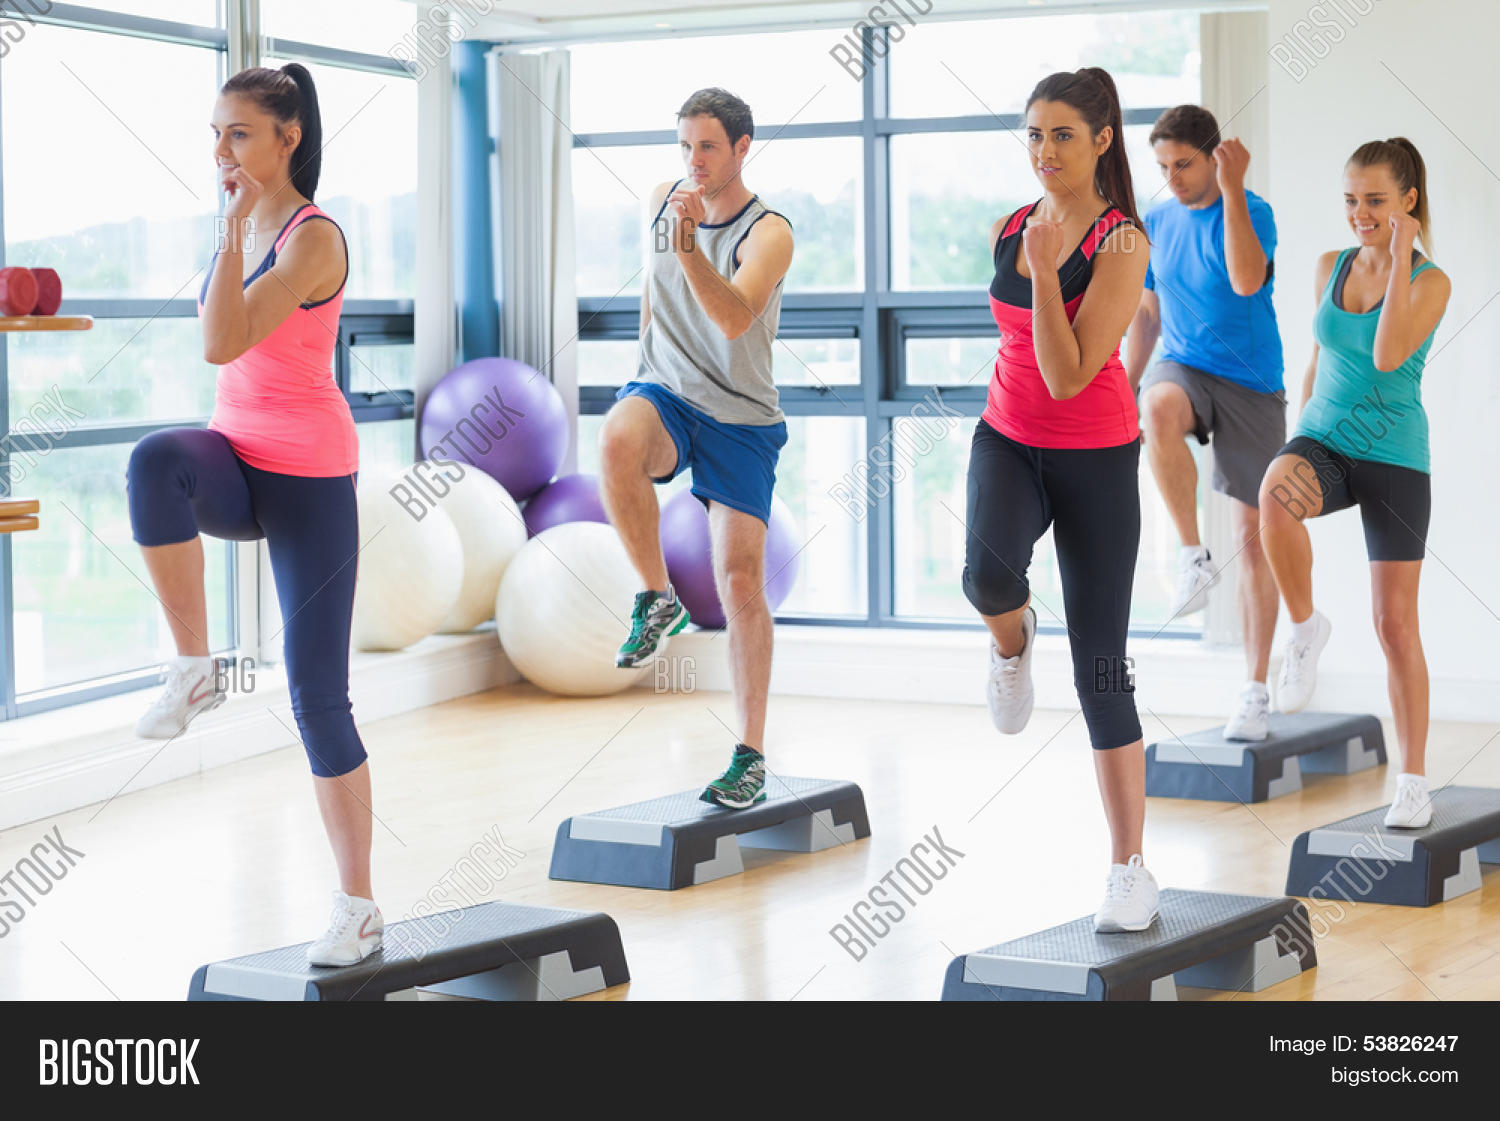 Aerobic exercise videos free download mp4 hd 3gp.